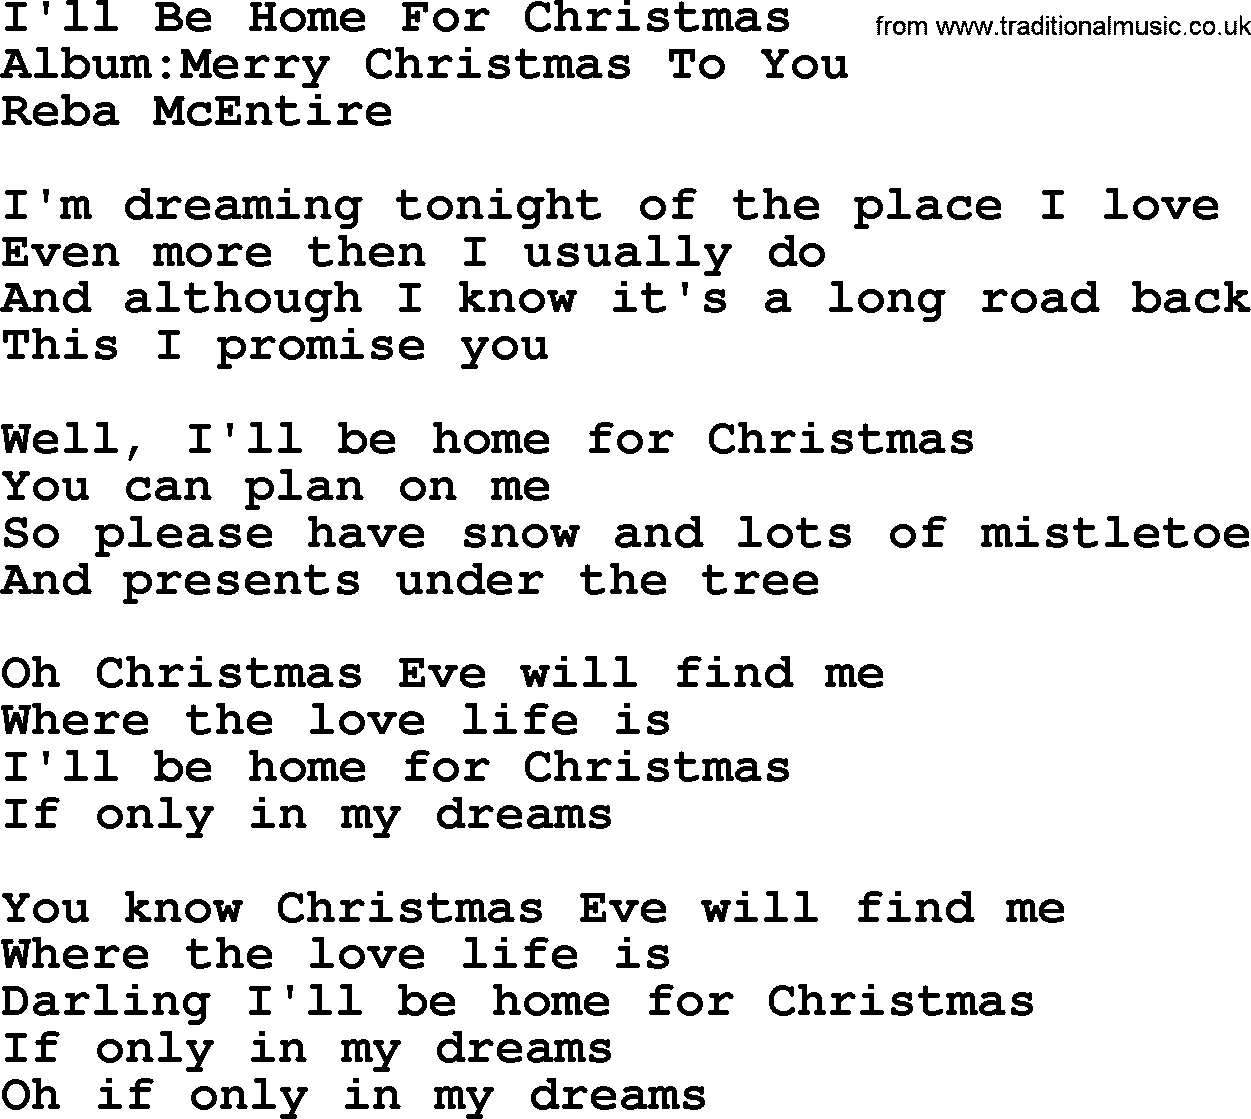 reba mcentire song ill be home for christmas lyrics - Who Wrote I Ll Be Home For Christmas